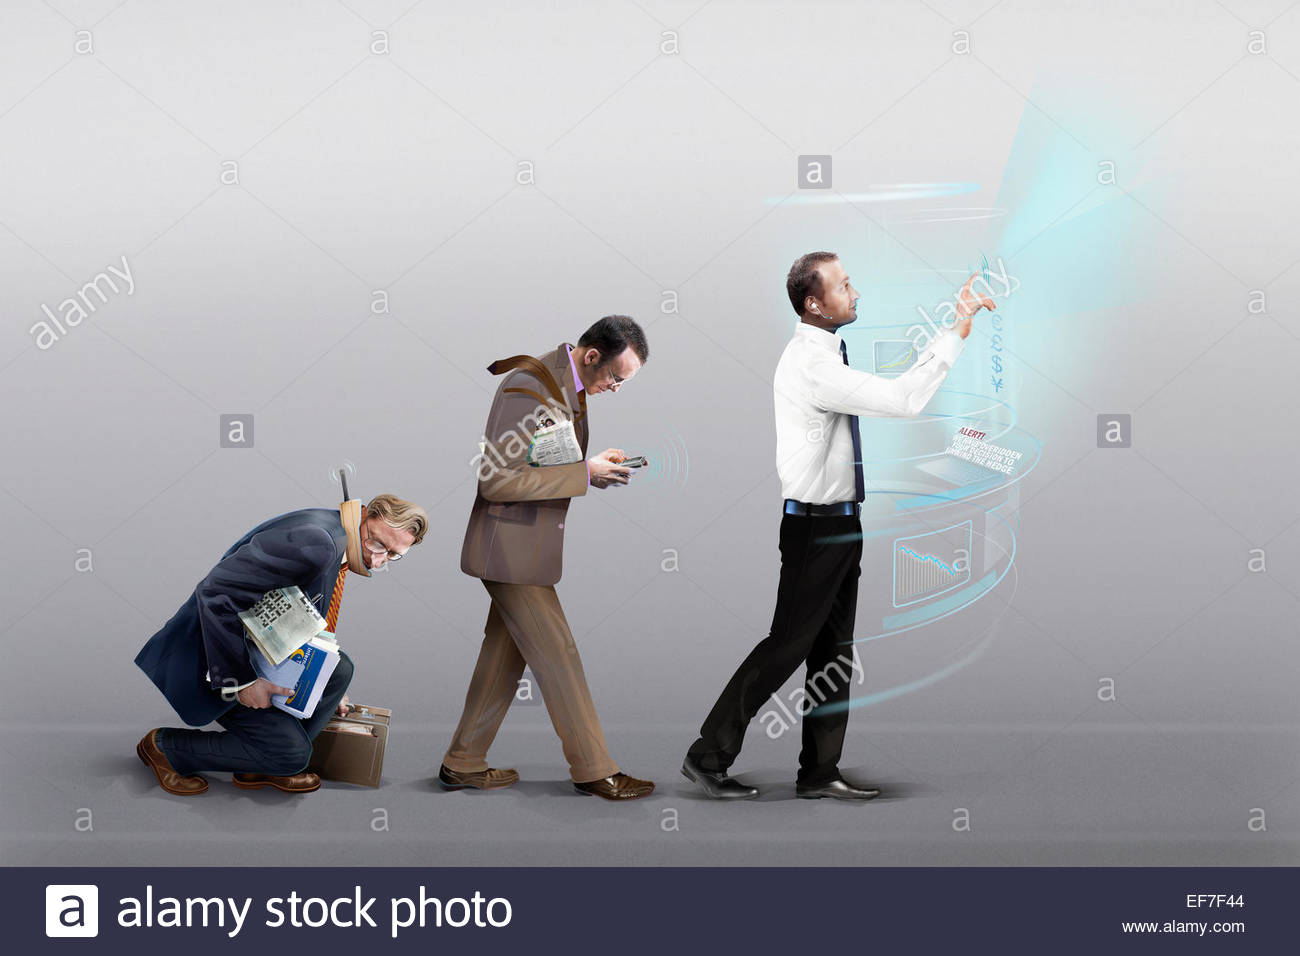 Three businessmen in stages of evolution of mobile communication technology - Stock Image